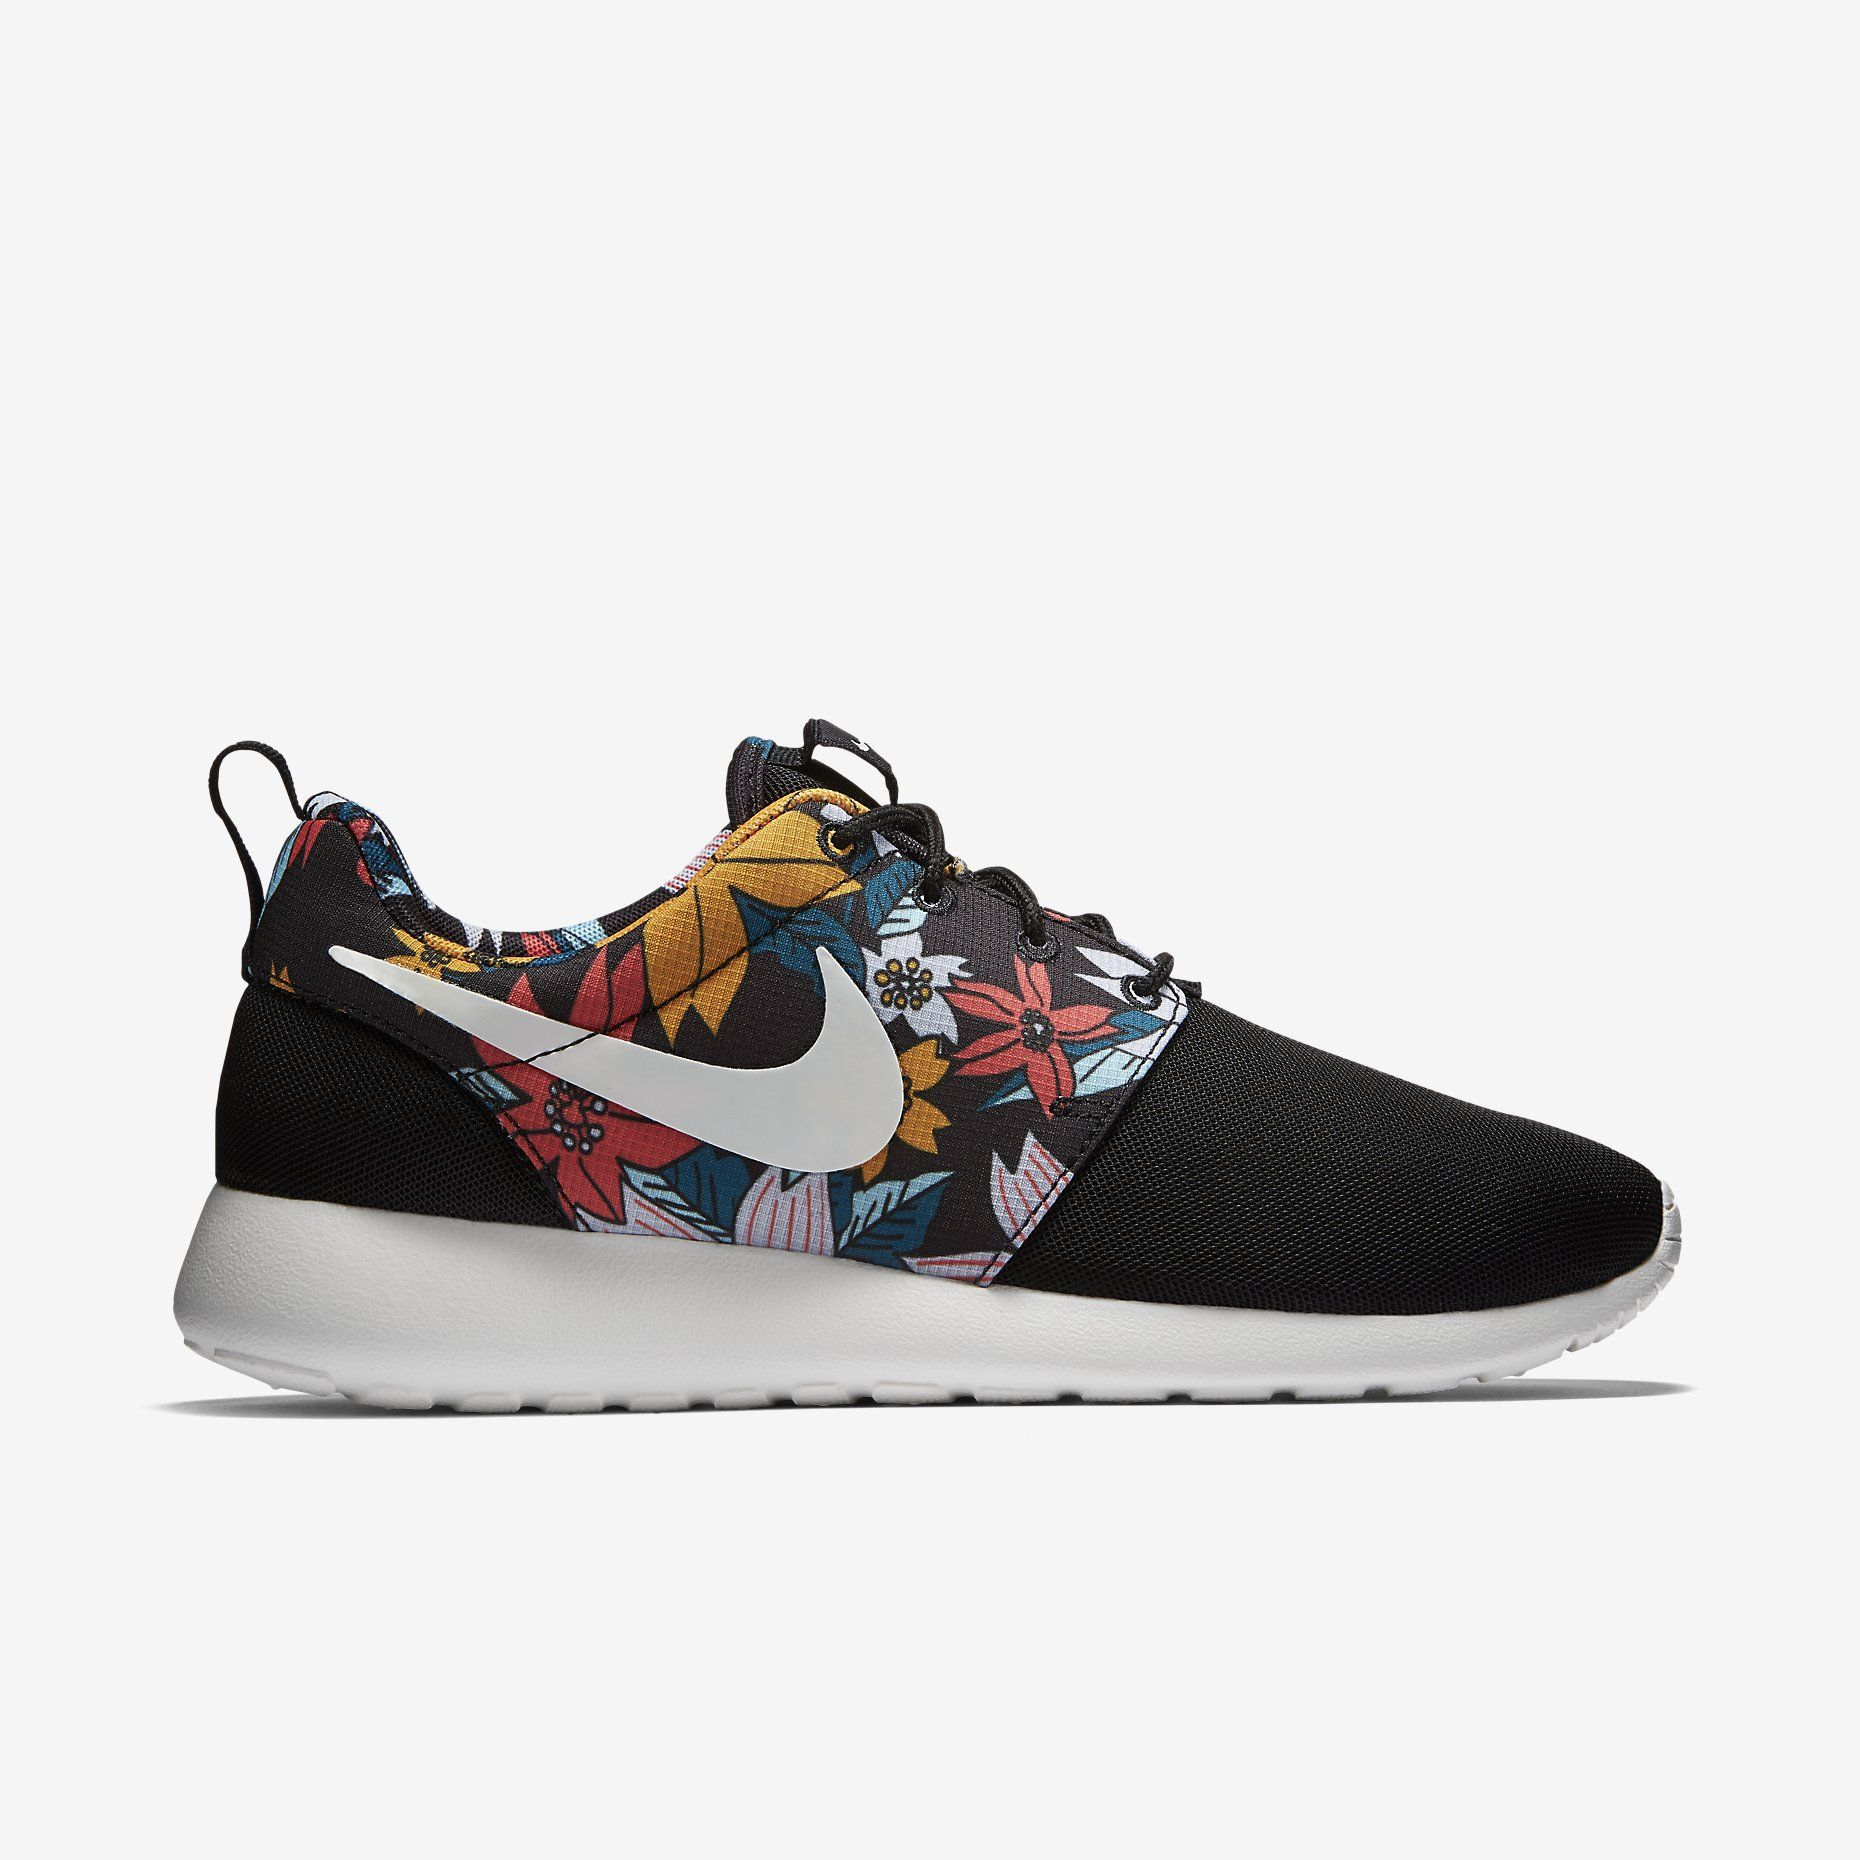 newest collection 8d85a 6e690 Nike Roshe One Print Womens Shoe. Nike Store DK